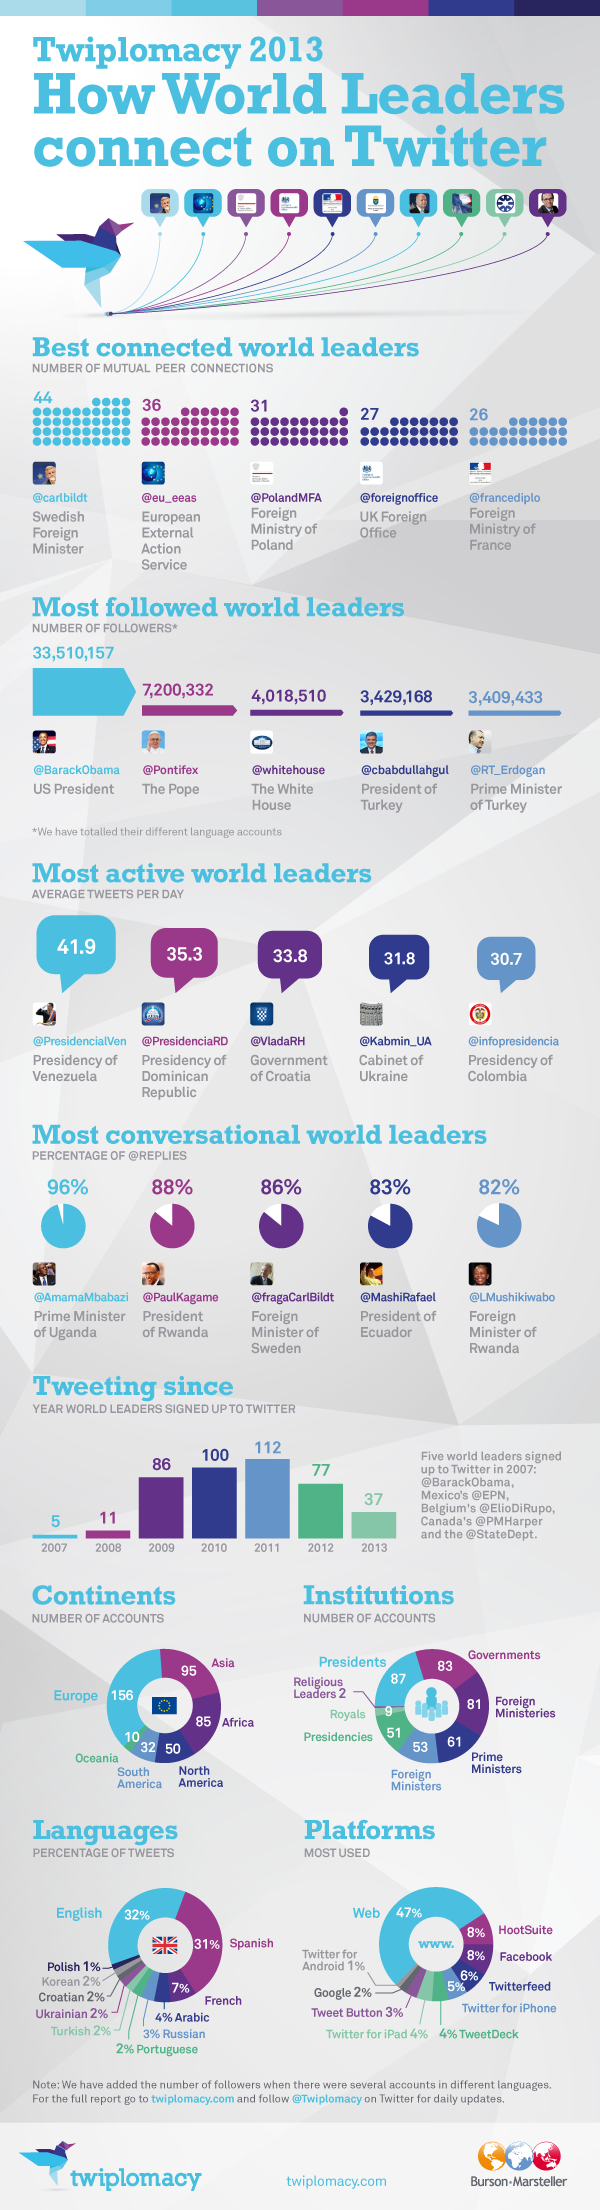 Most conversational world leaders on Twitter